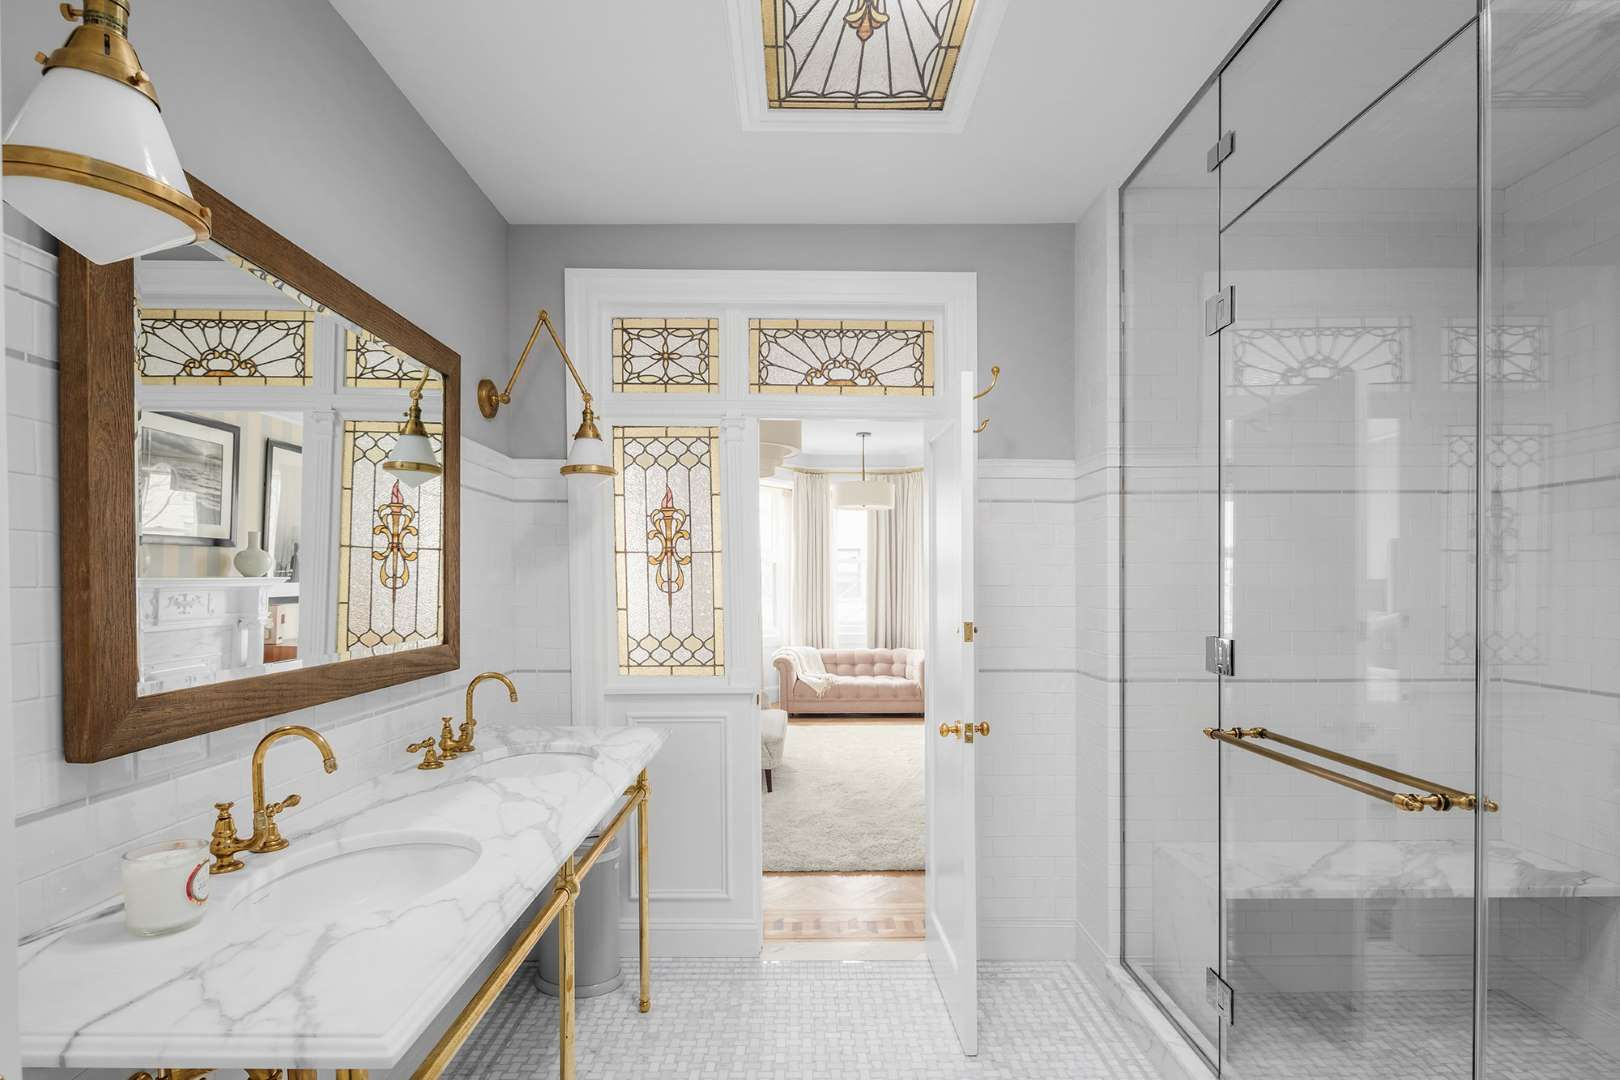 Pin by Rees Williams on Country Bathrooms | Pinterest